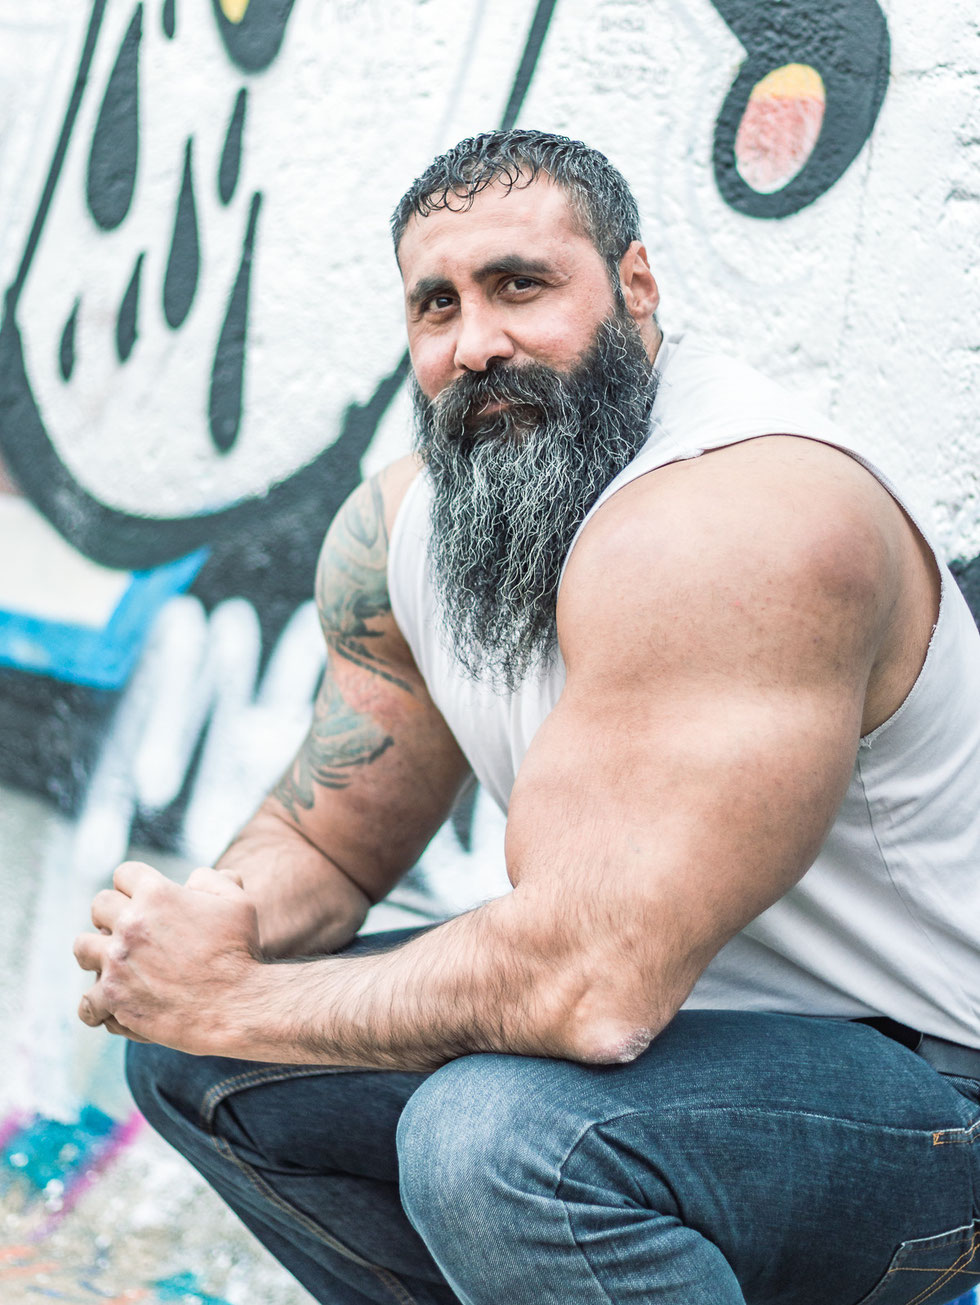 Extrem, gym, gymlife, bodybuilder, berlin, hulk, sylvester stalone, machine, maschine, tatoo, inked, muscle, arms, real life hulk, addict, body, sport, bart, beard, muskel, muskelmann, atleth